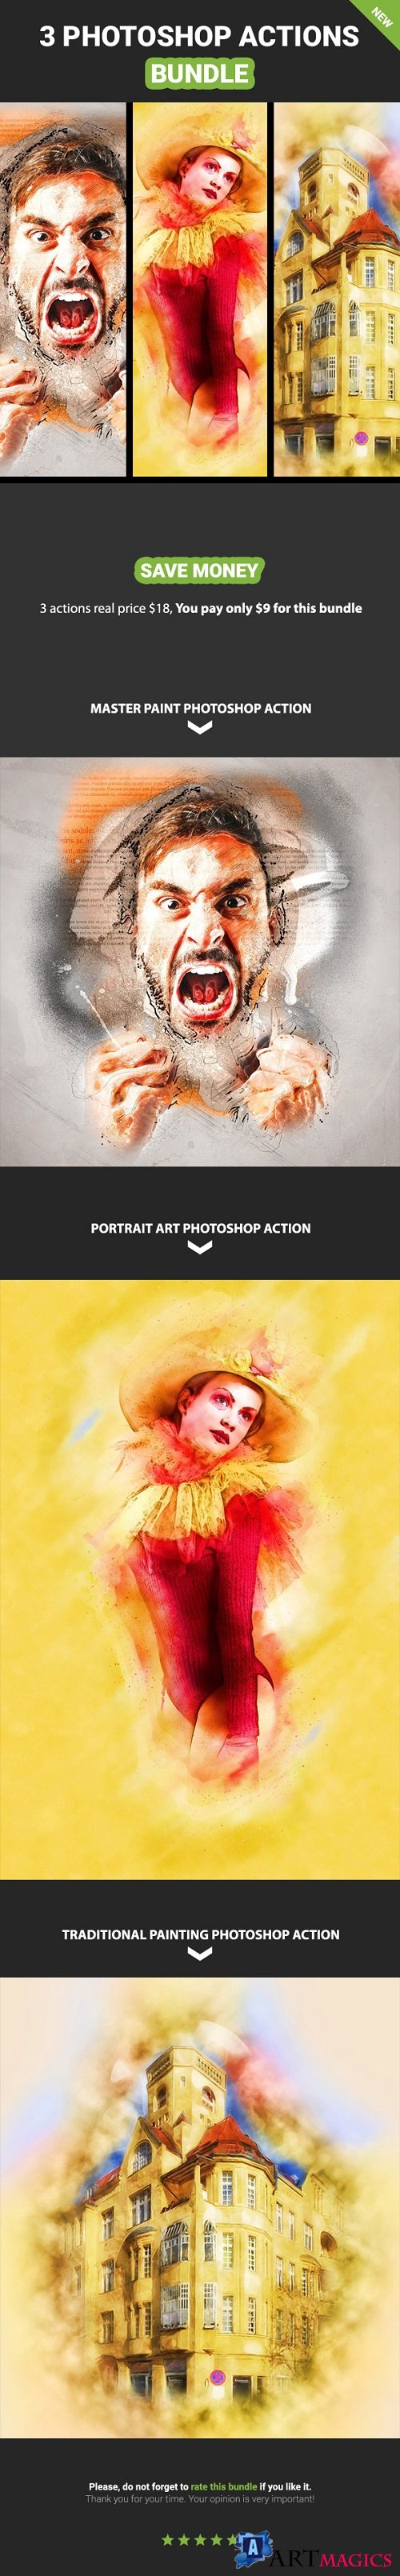 3 photoshop Action Bundle - Vol.6 - 20820820